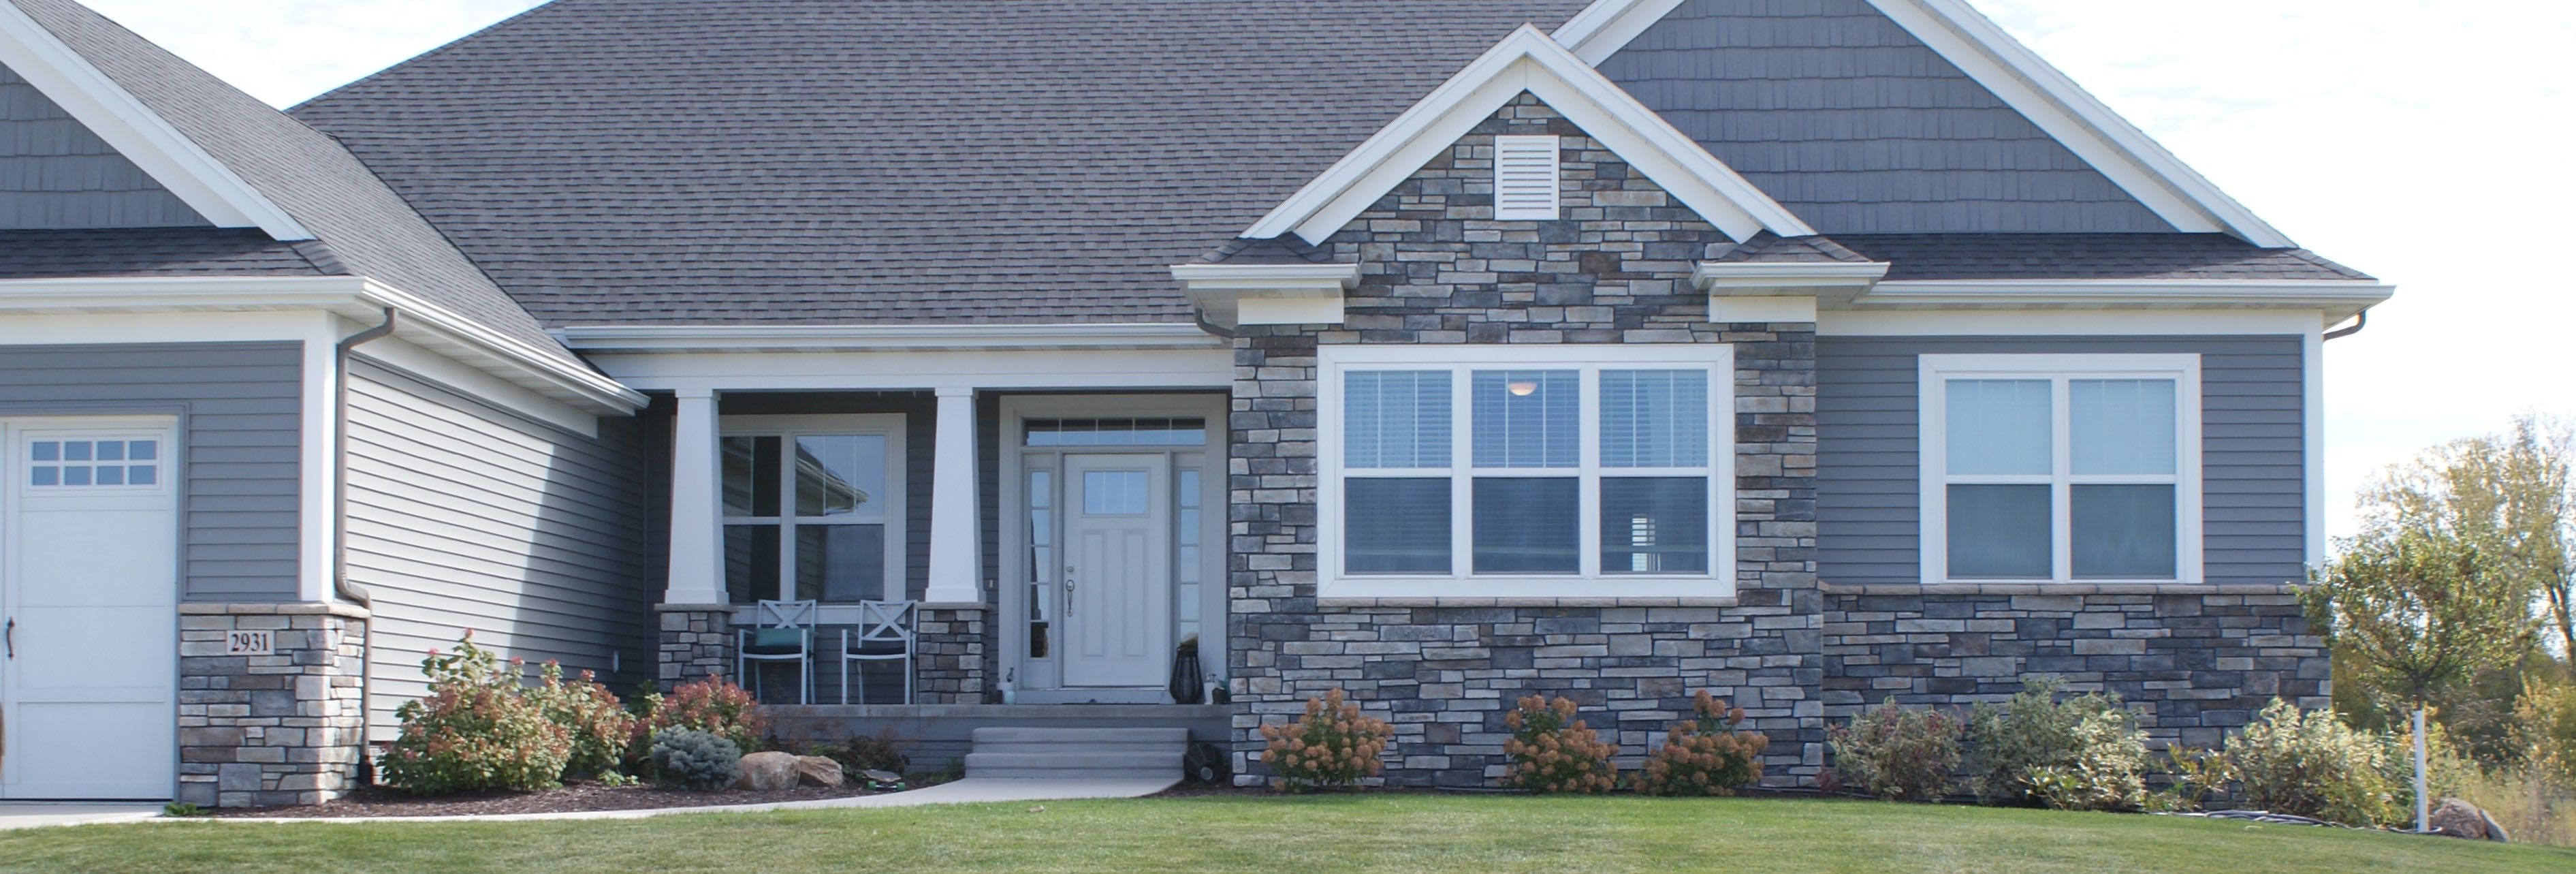 The Fagenstrom Co Echo Ridge Country Ledgestone Great